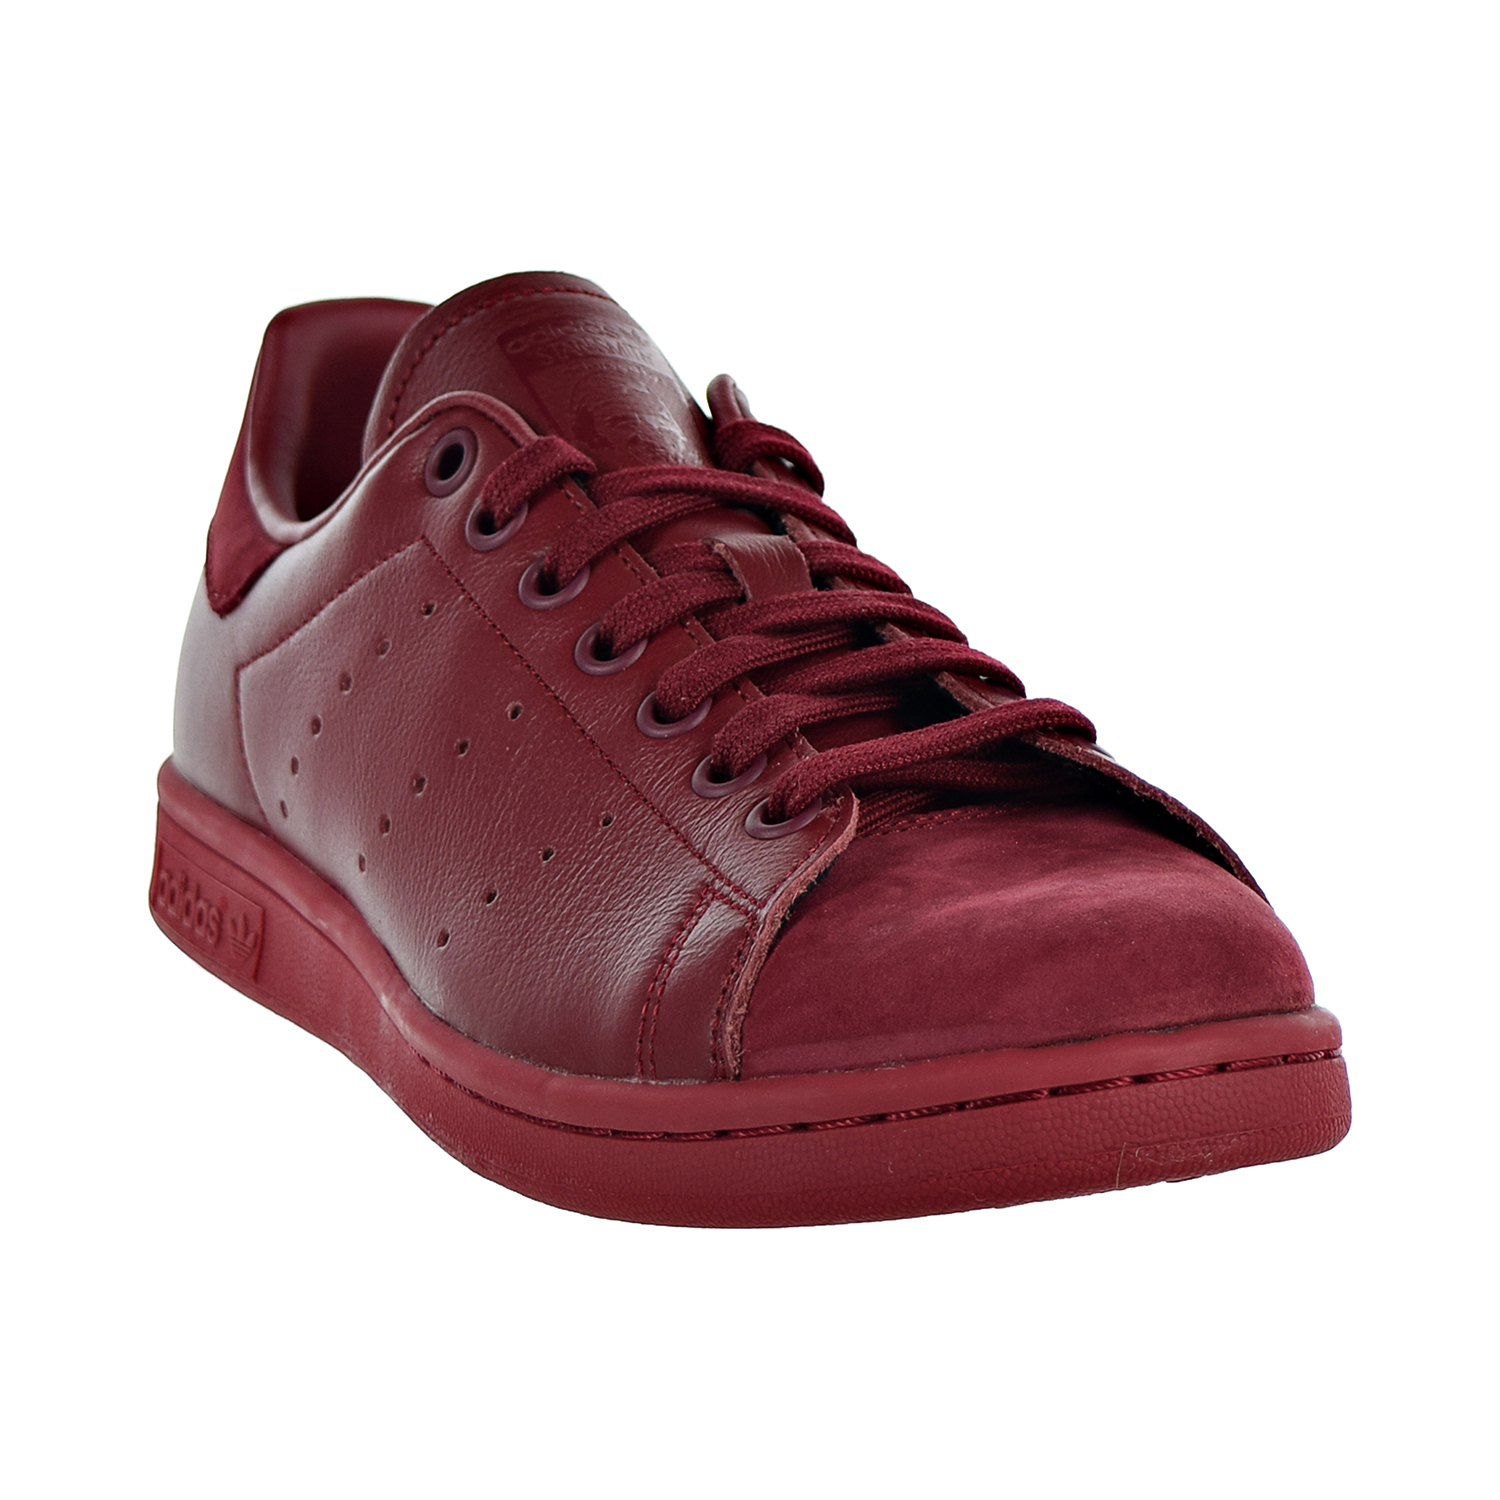 promo code 07f19 cc235 Adidas Stan Smith Mens Shoes Burgundy b37920